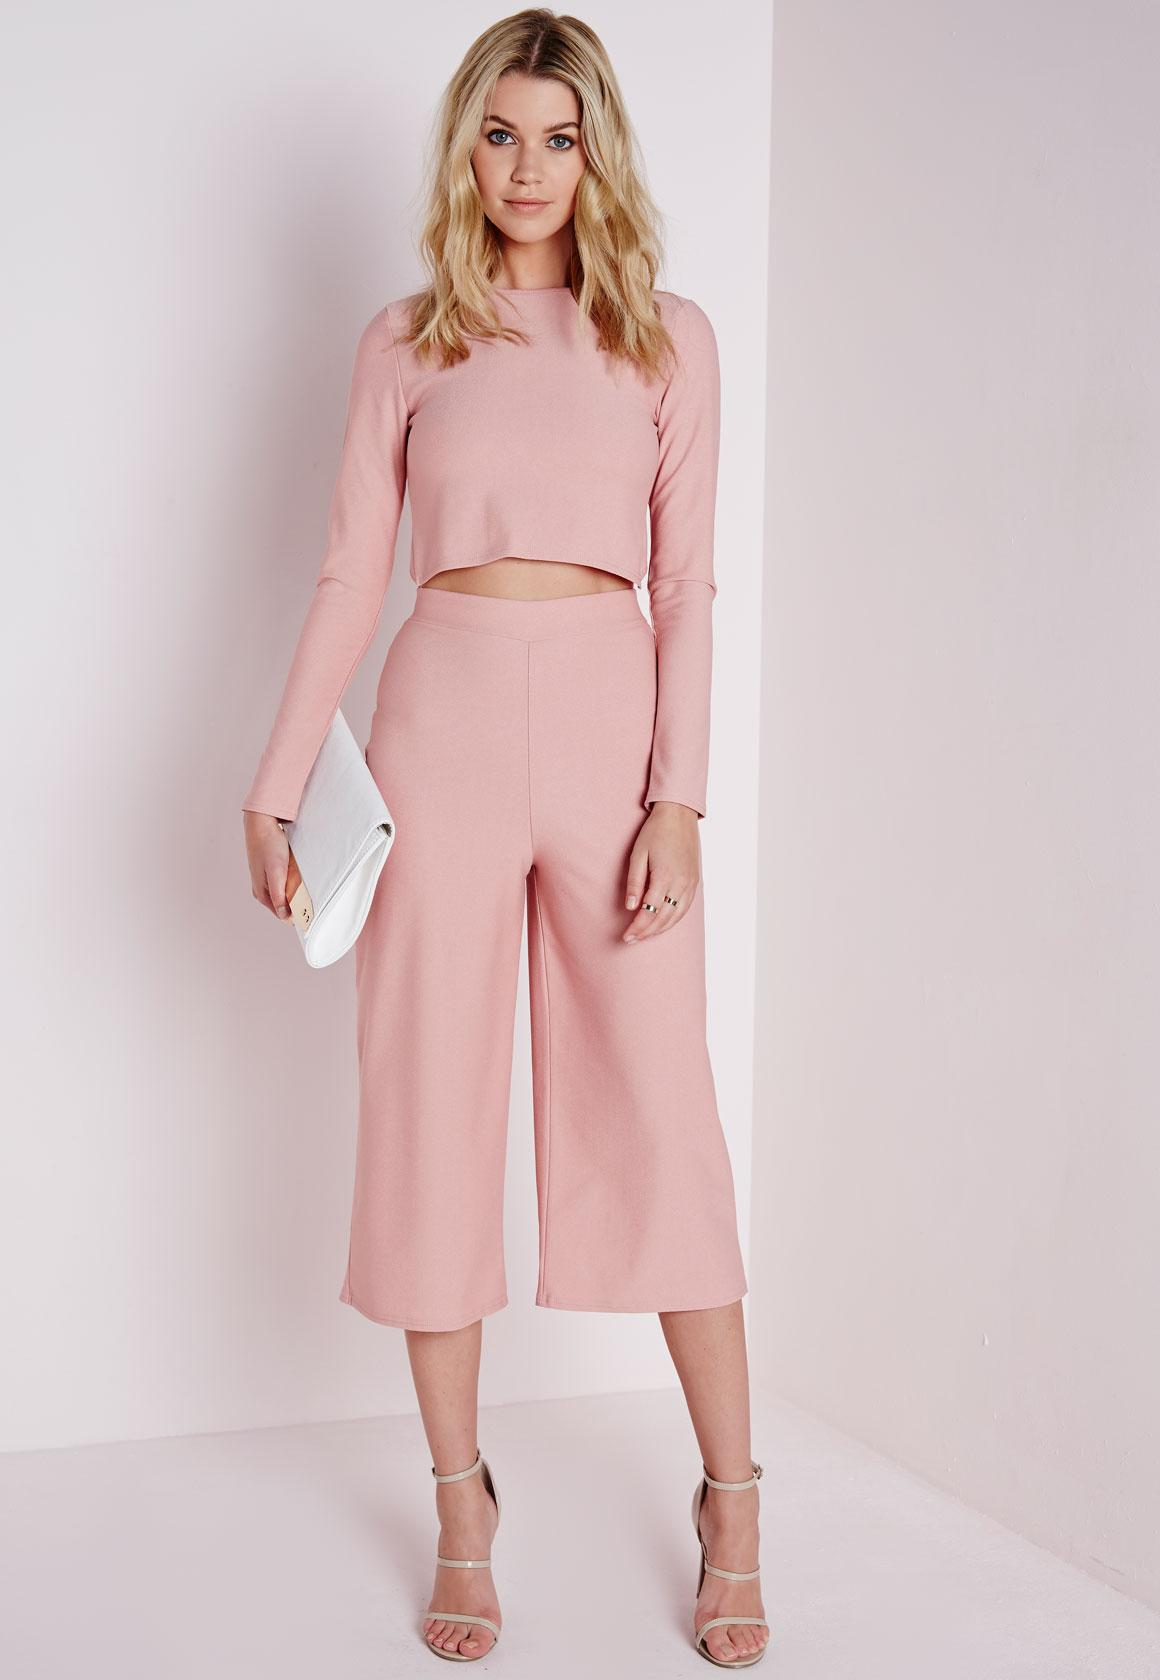 15 Chic Plus Size Outfits With Culottes 15 Chic Plus Size Outfits With Culottes new foto